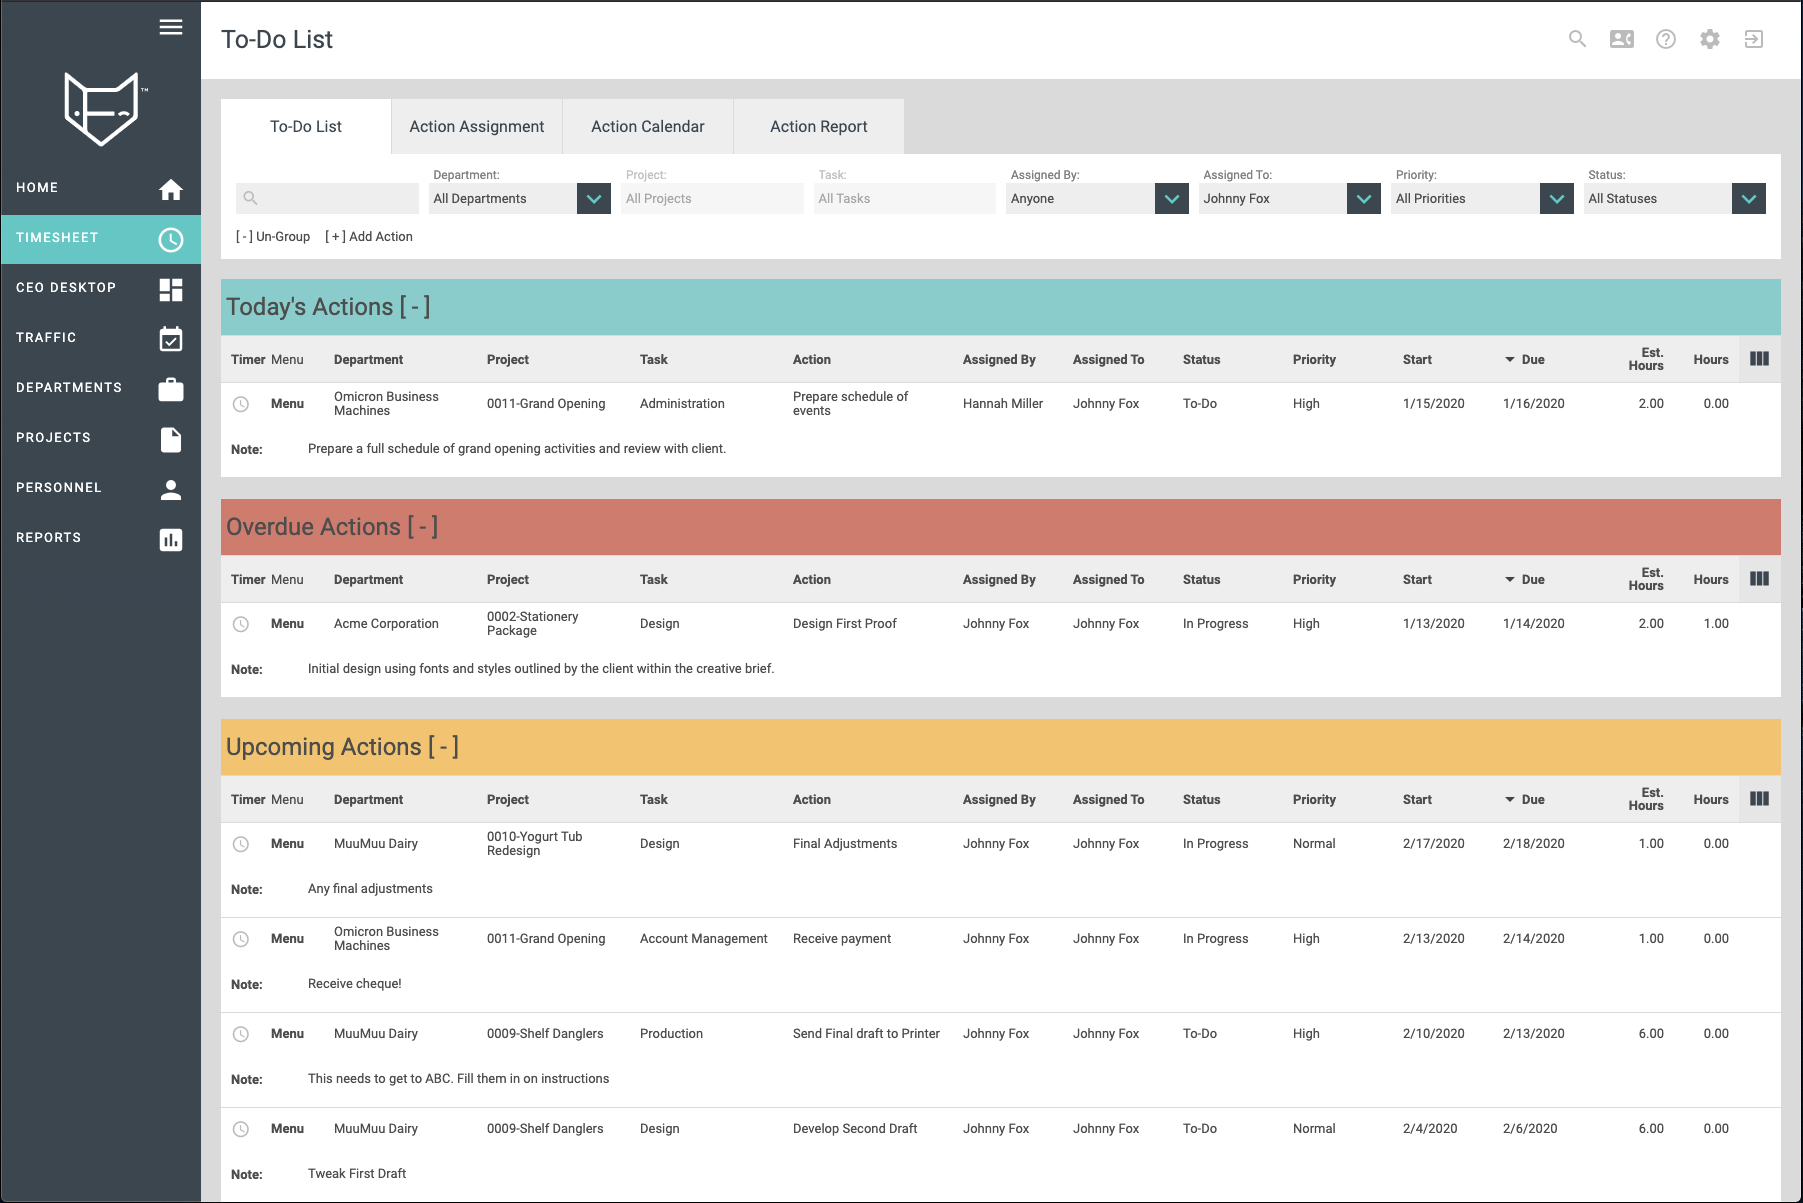 FunctionFox Software - To-Do list: actionable listings of your work assignments